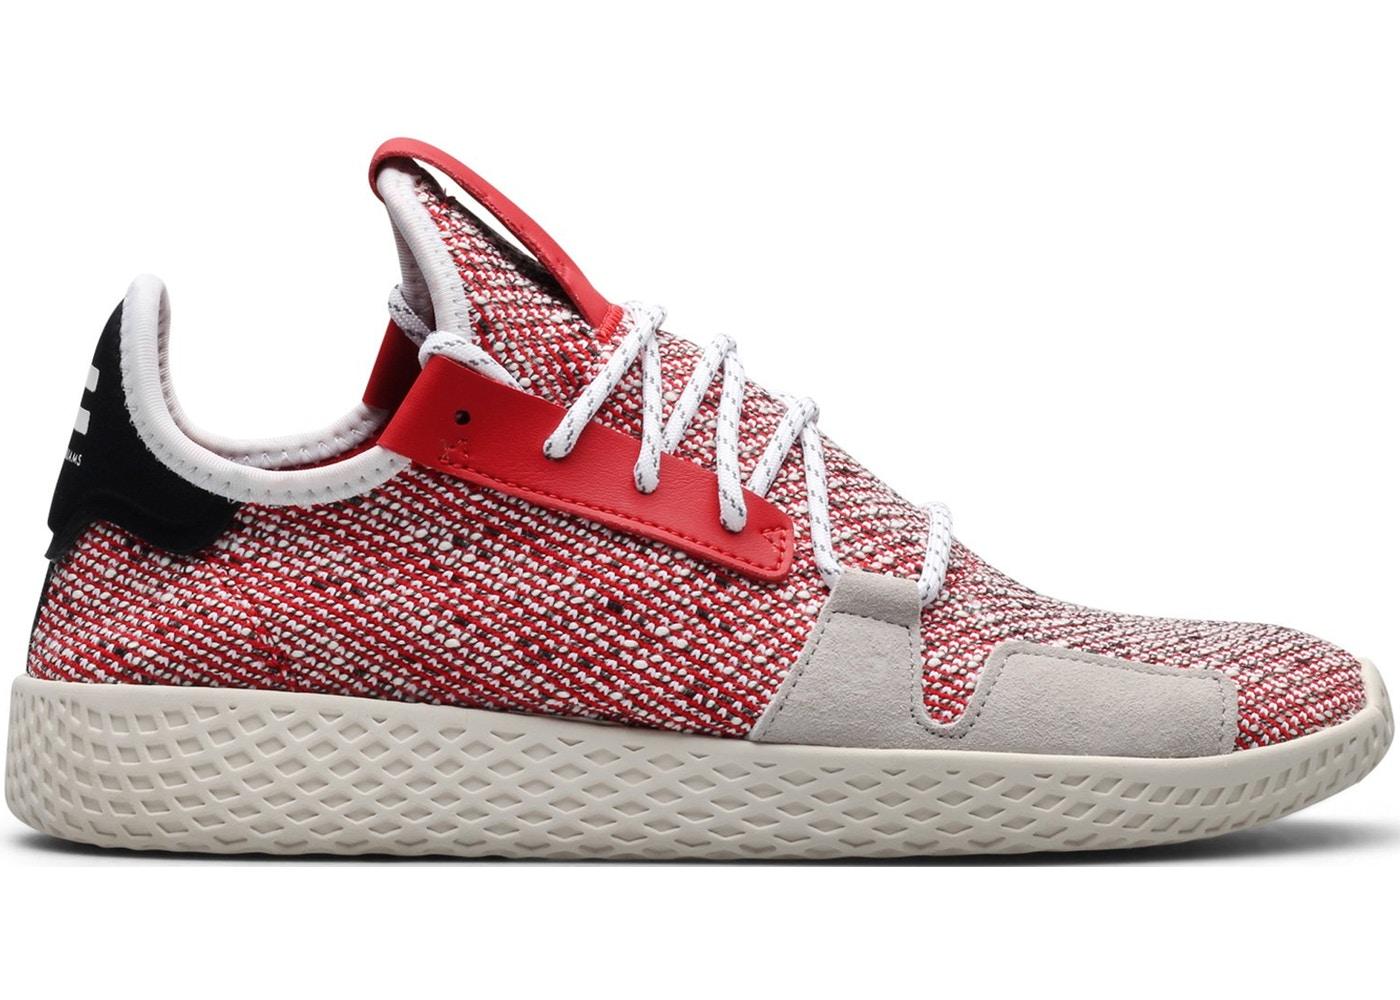 480908333a259 Sell. or Ask. Size  12.5. View All Bids. adidas Tennis Hu V2 ...